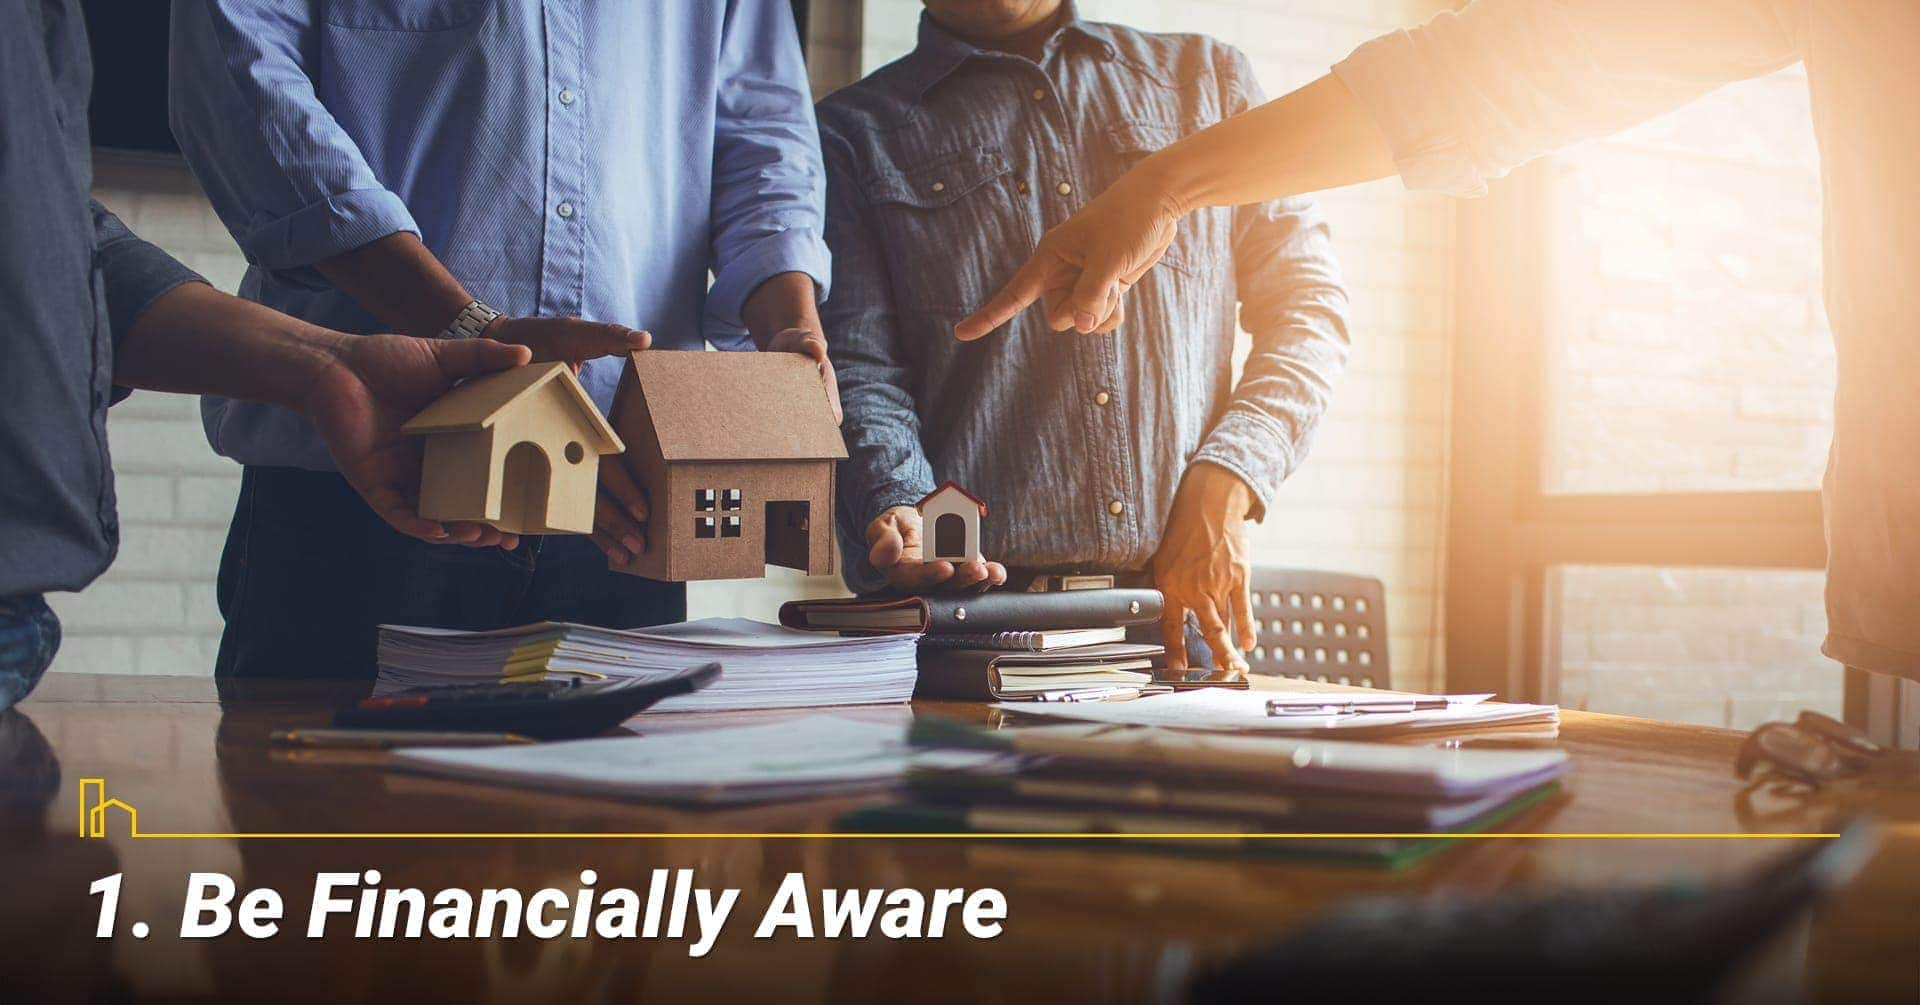 Be Financially Aware, aware of your financial situation